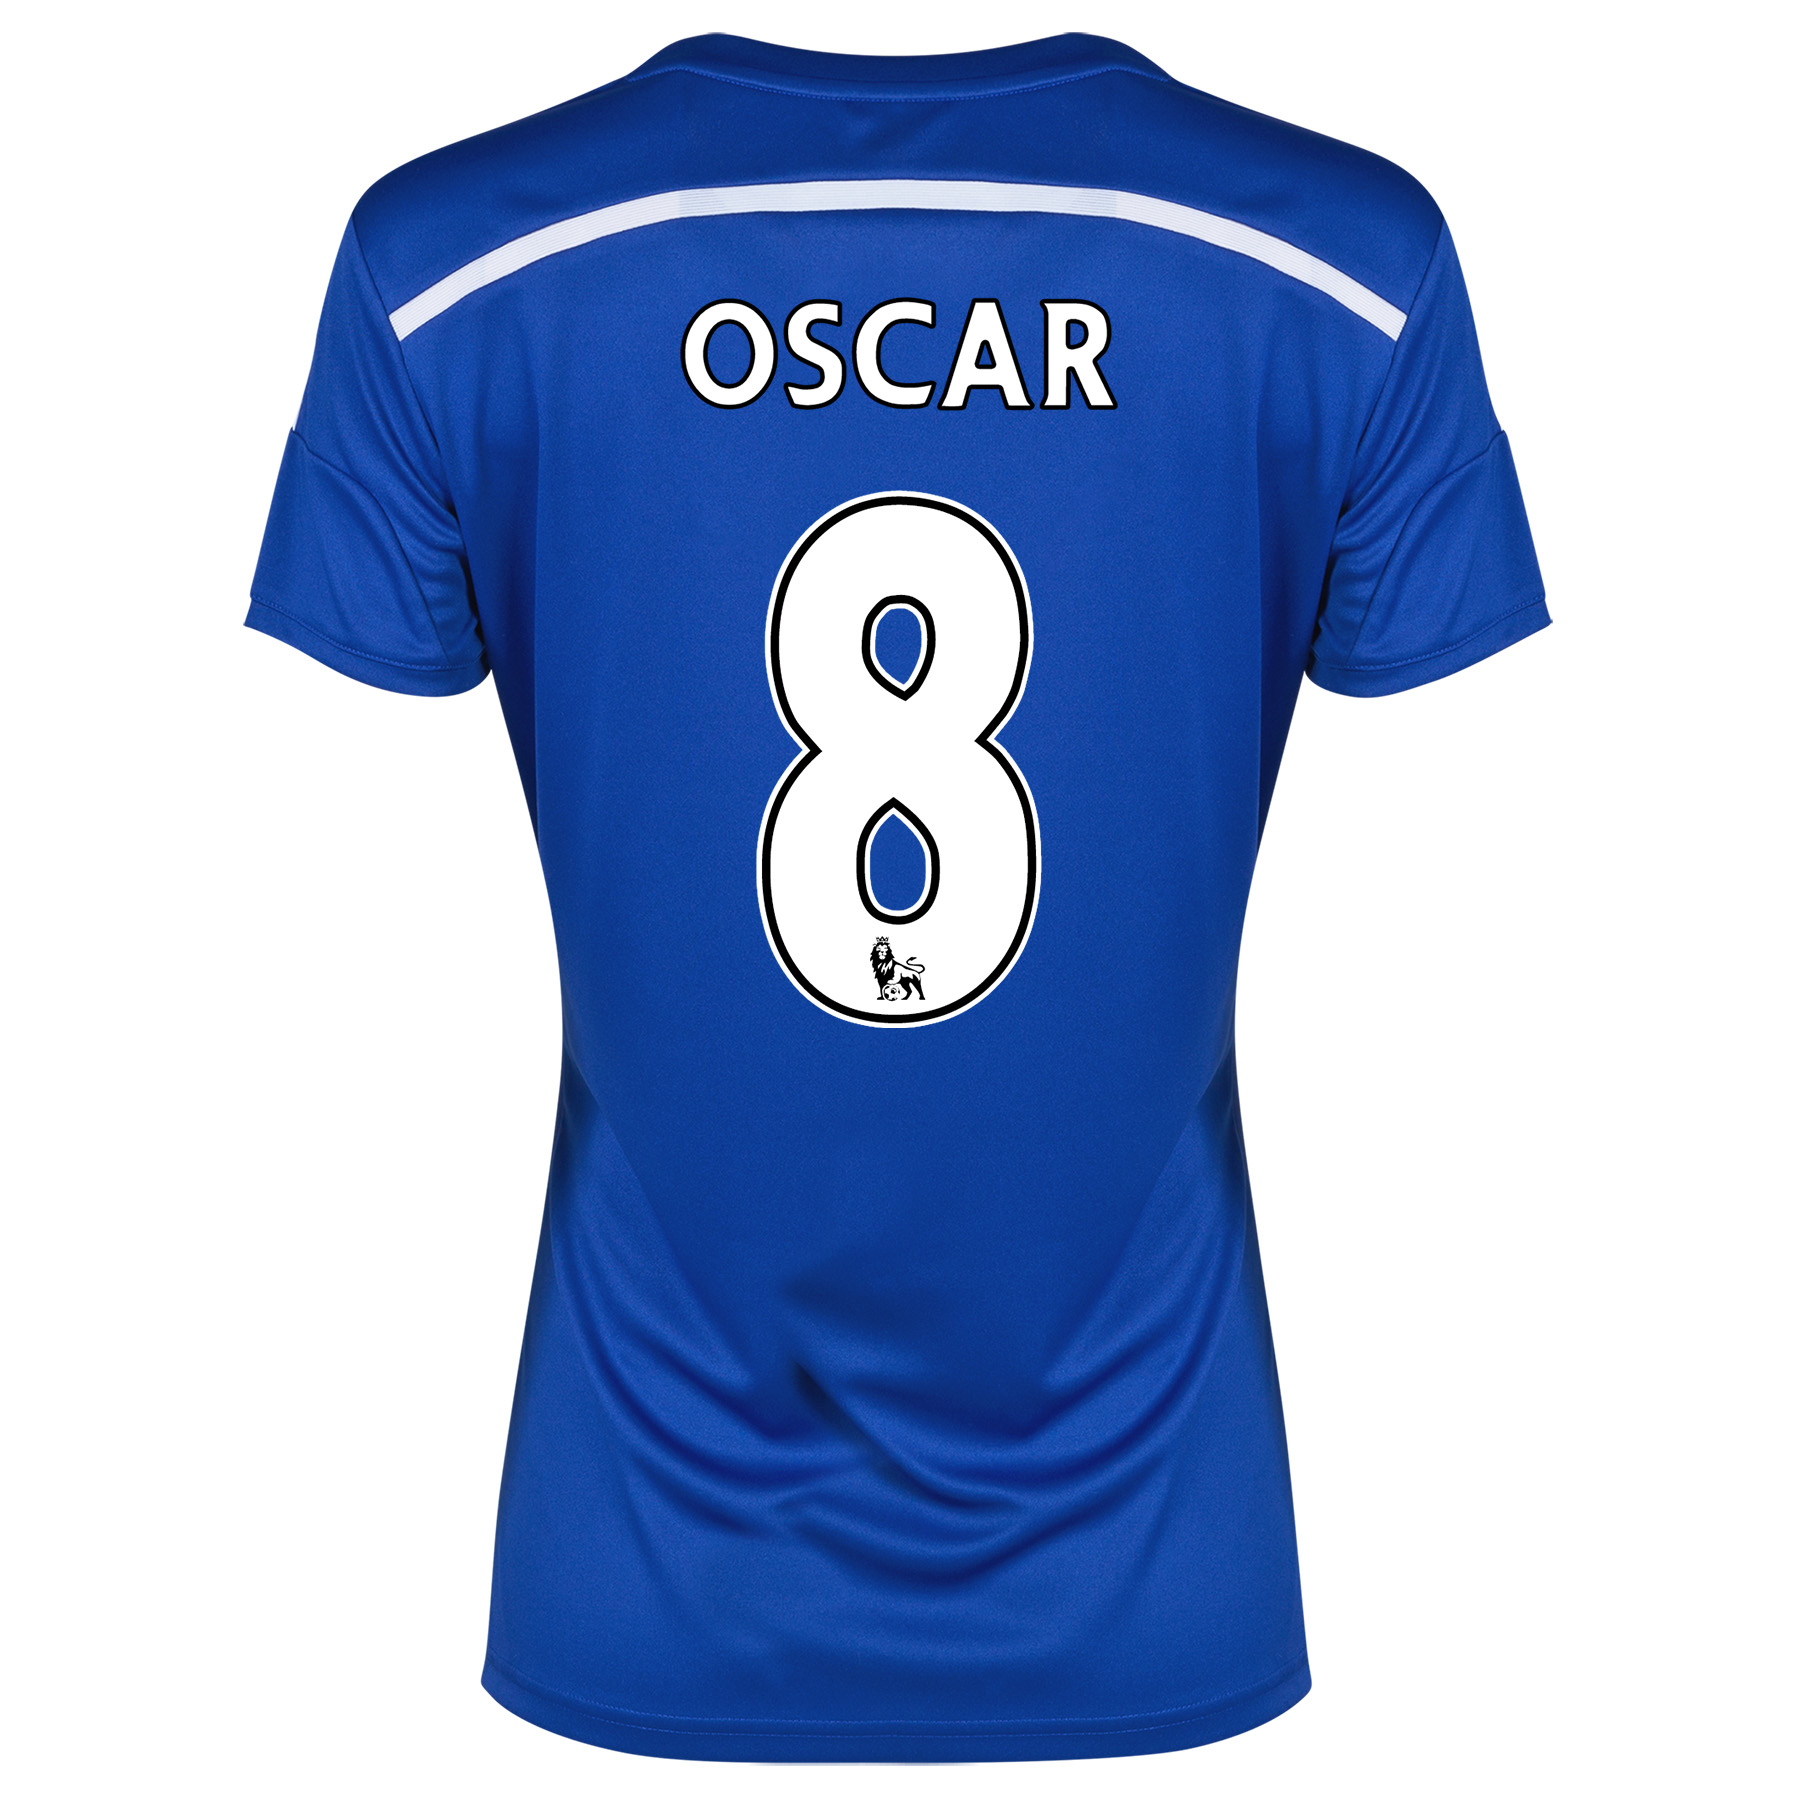 Chelsea Home Shirt 2014/15 - Womens Blue with Oscar 11 printing